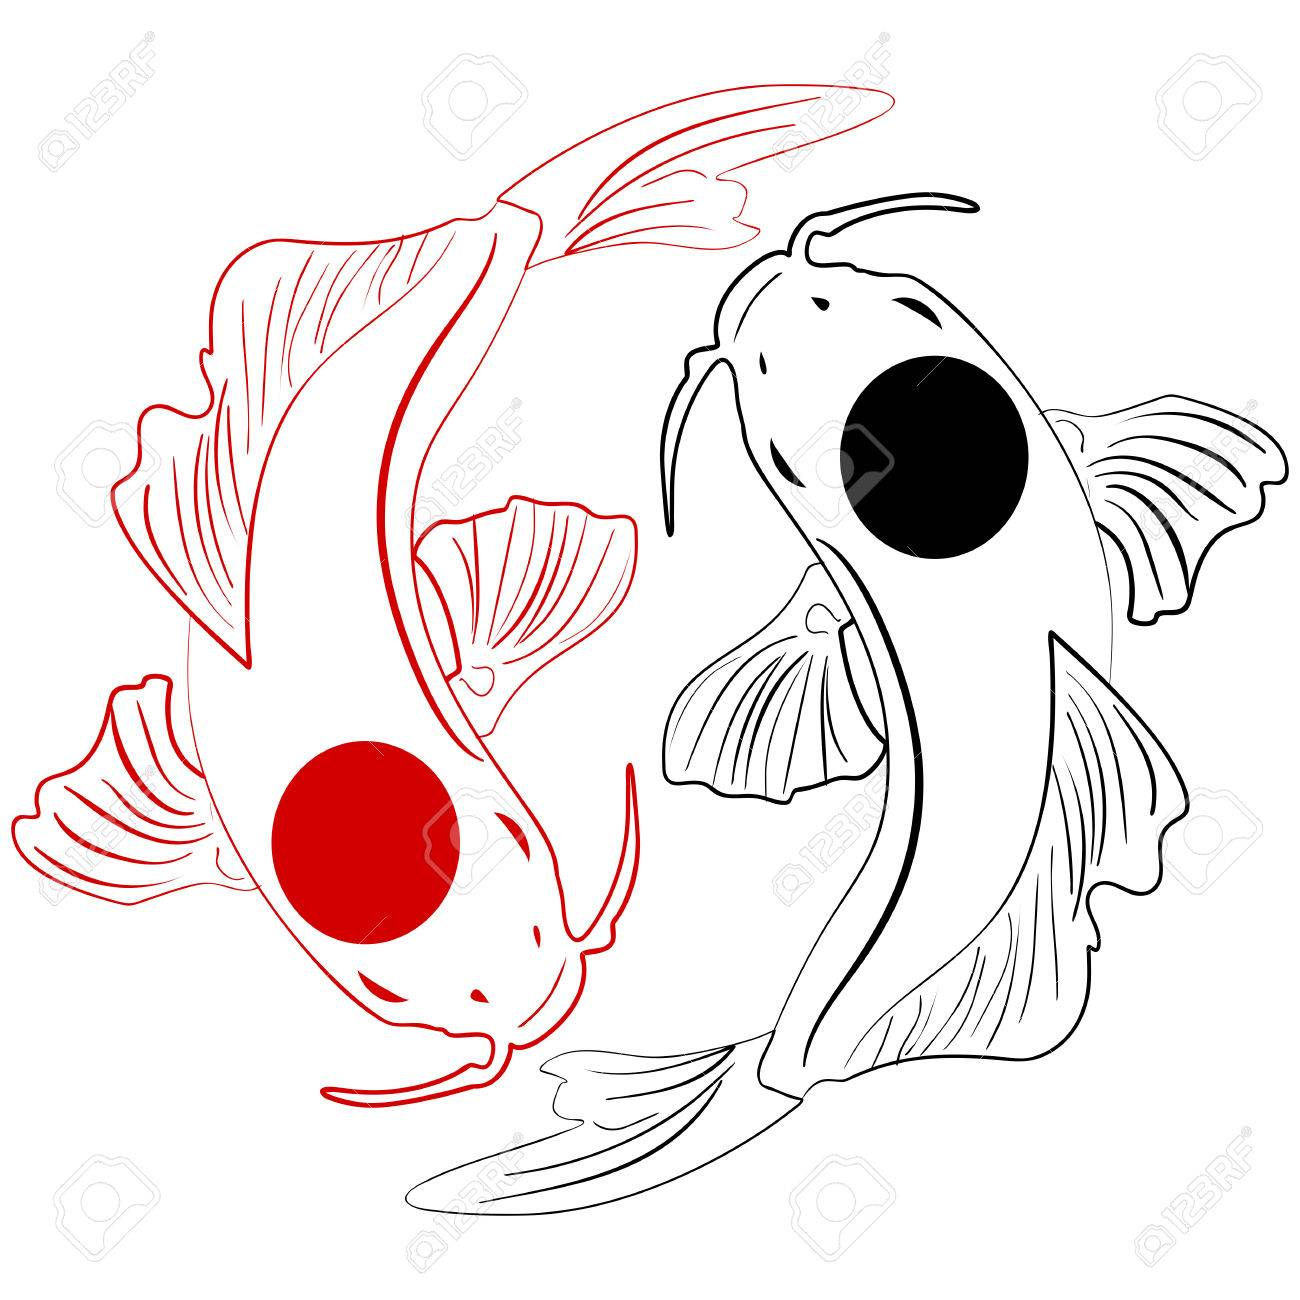 1300x1300 Chinese Koi Fish Clip Art Free. Excellent Sumie Sumie Black Ink